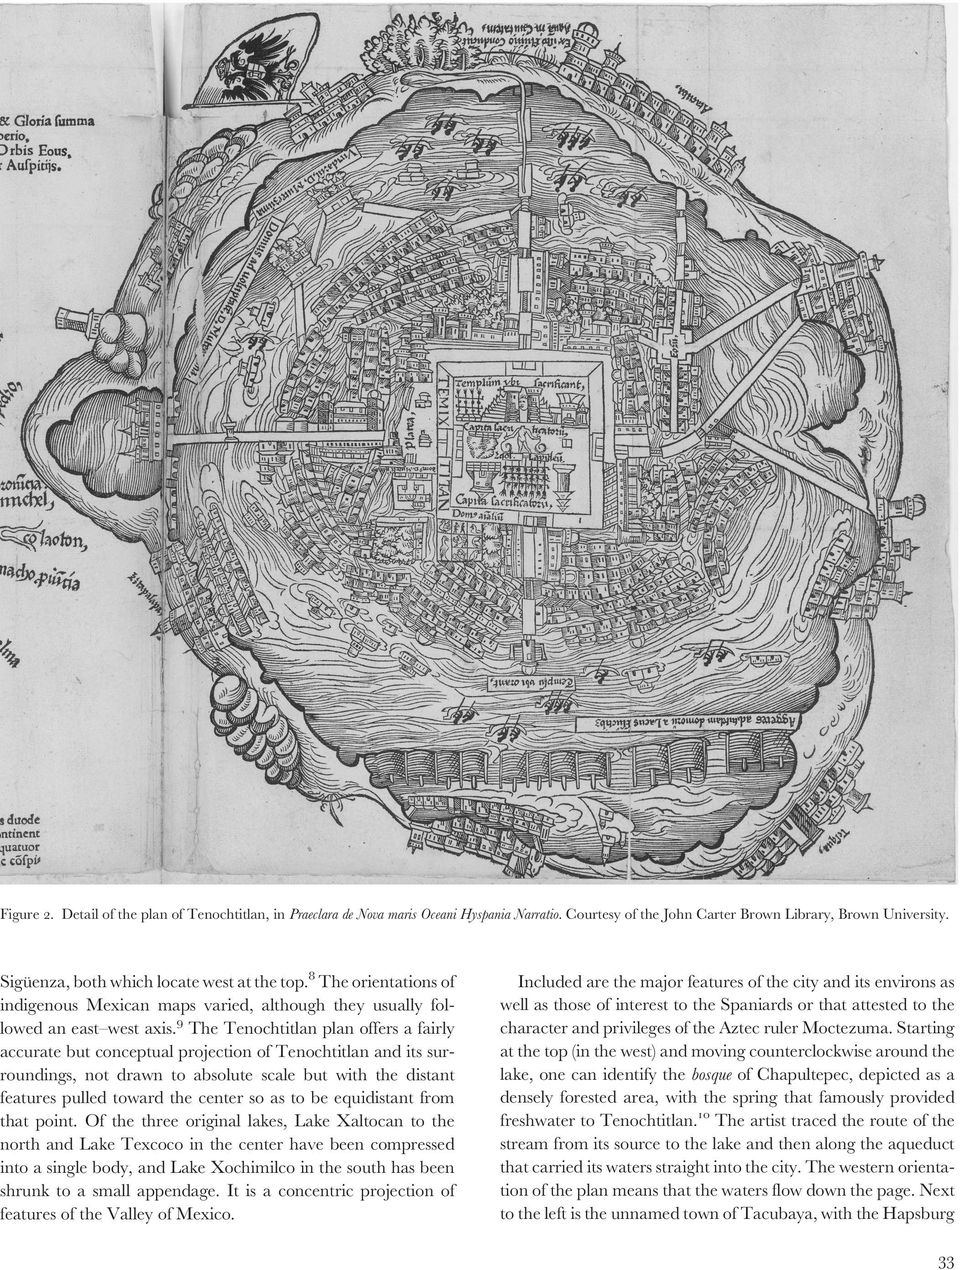 9 The Tenochtitlan plan offers a fairly accurate but conceptual projection of Tenochtitlan and its surroundings, not drawn to absolute scale but with the distant features pulled toward the center so